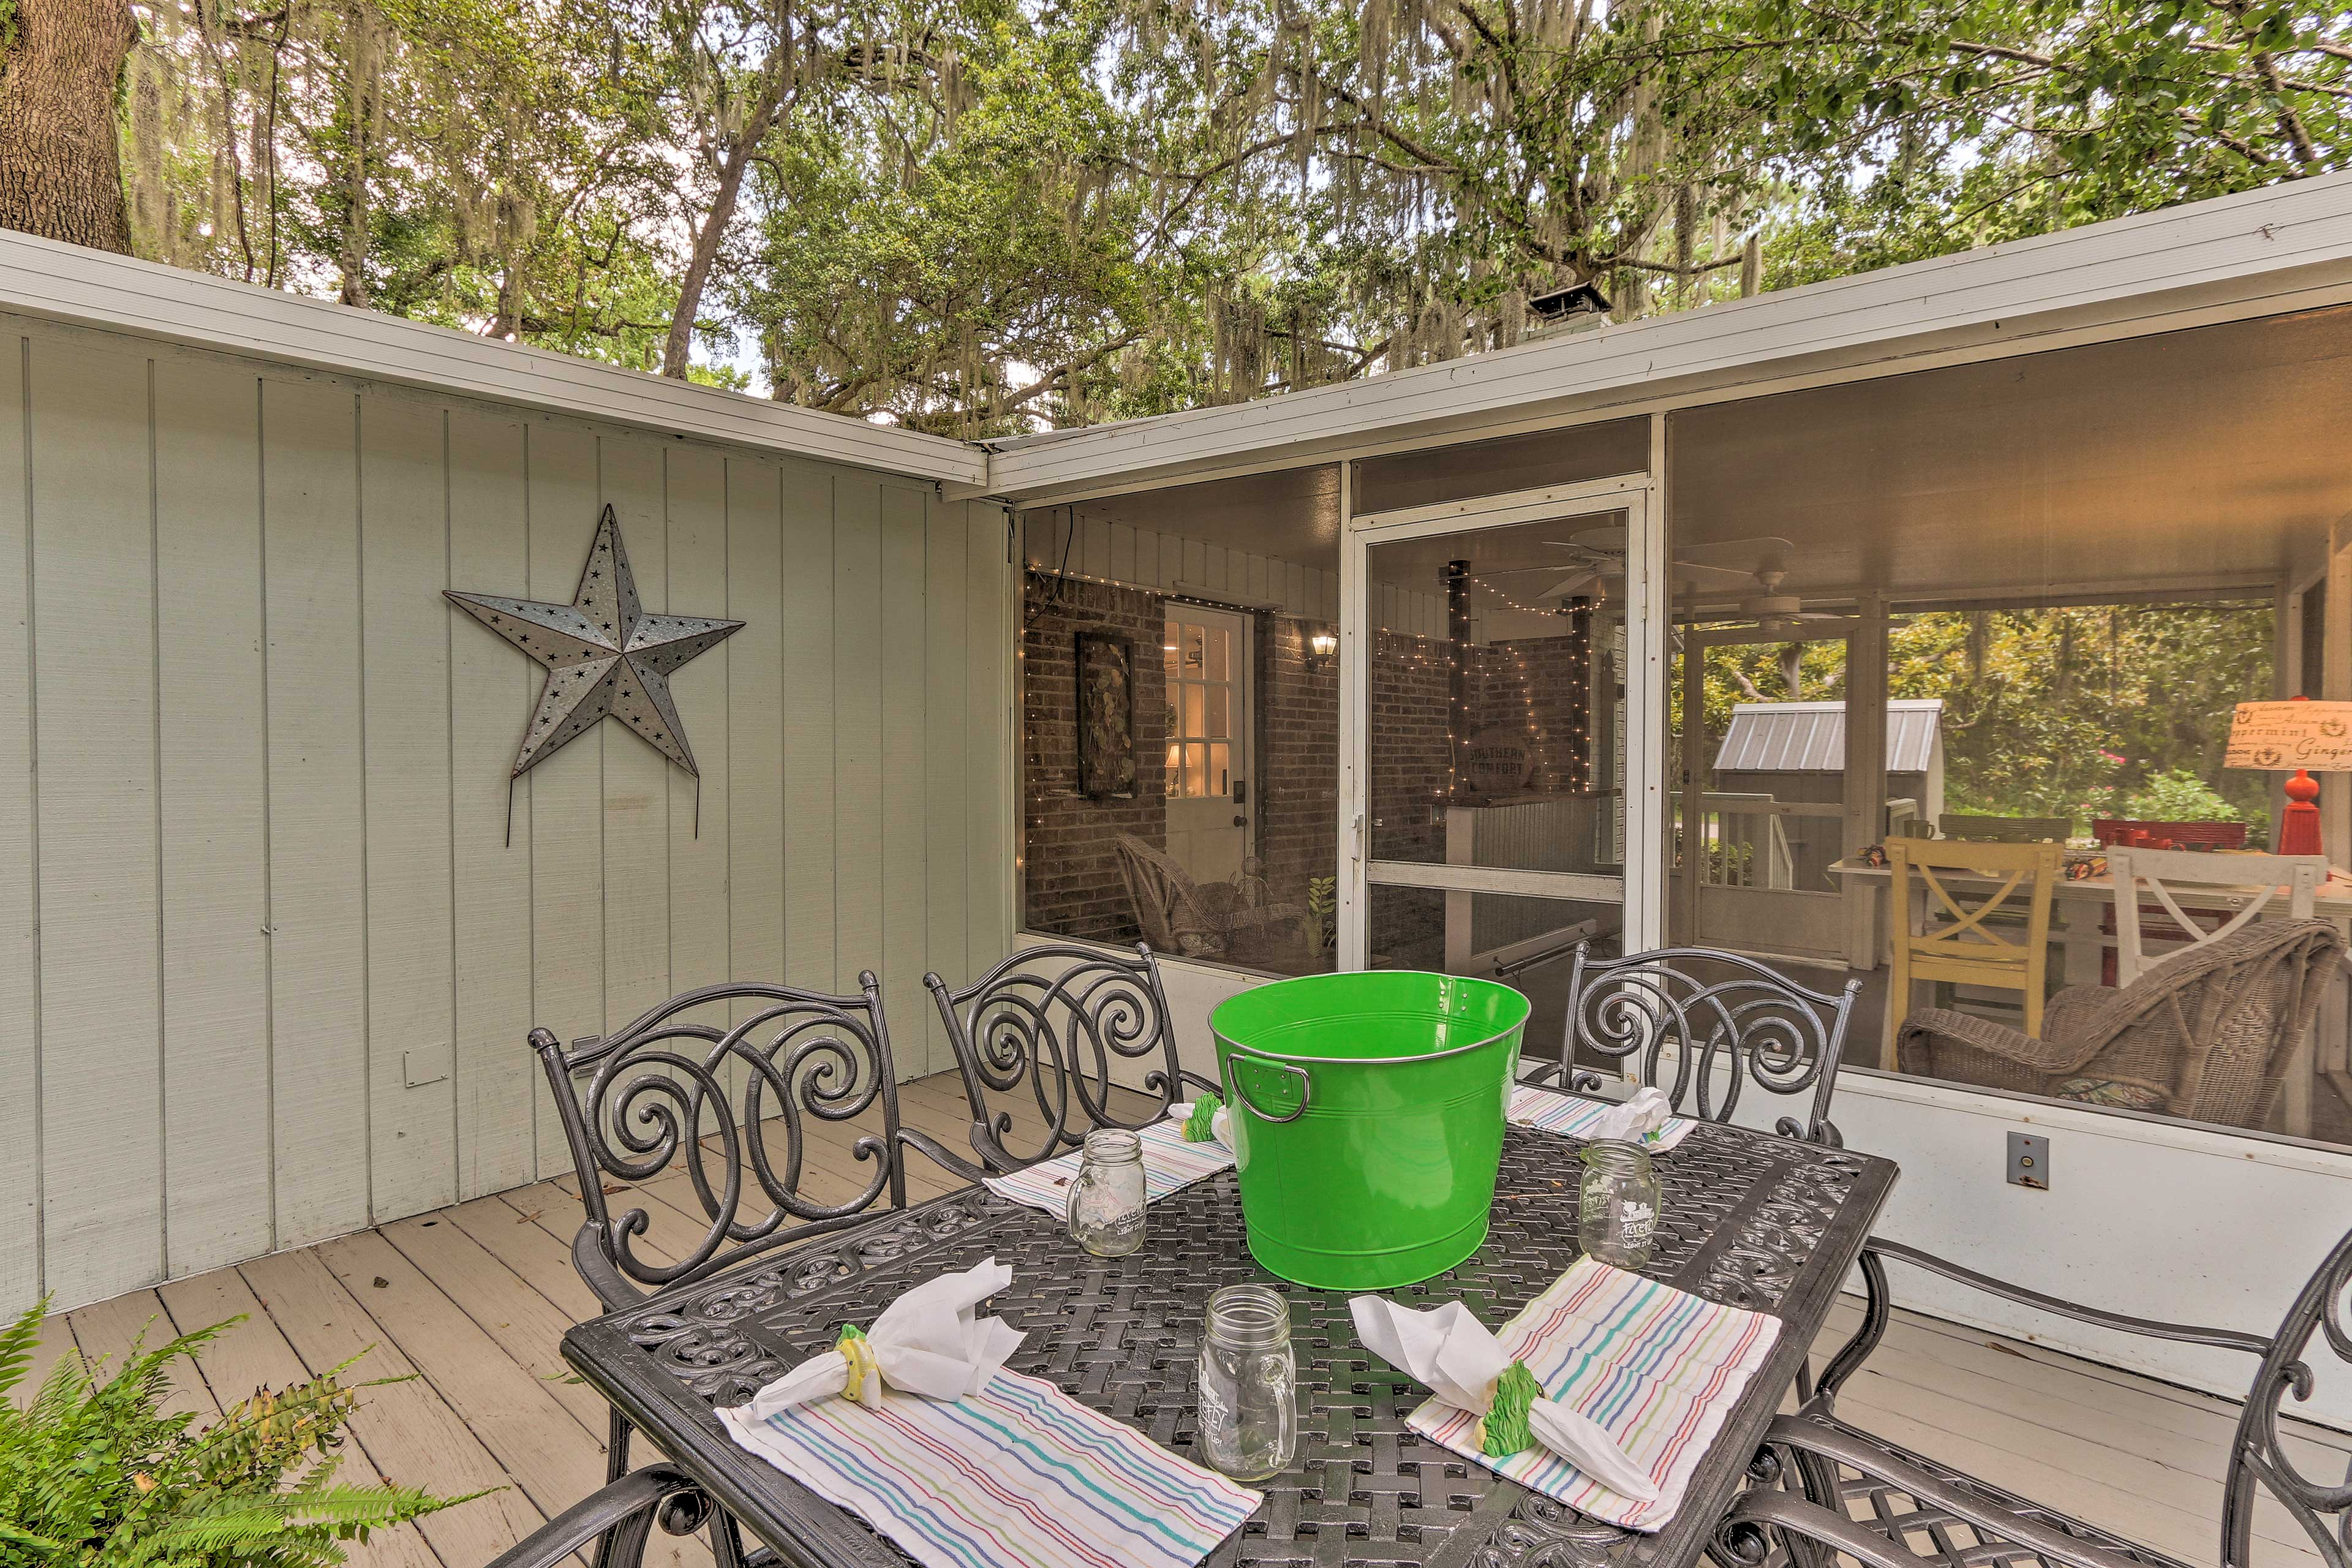 Sip a cocktail on the back deck!